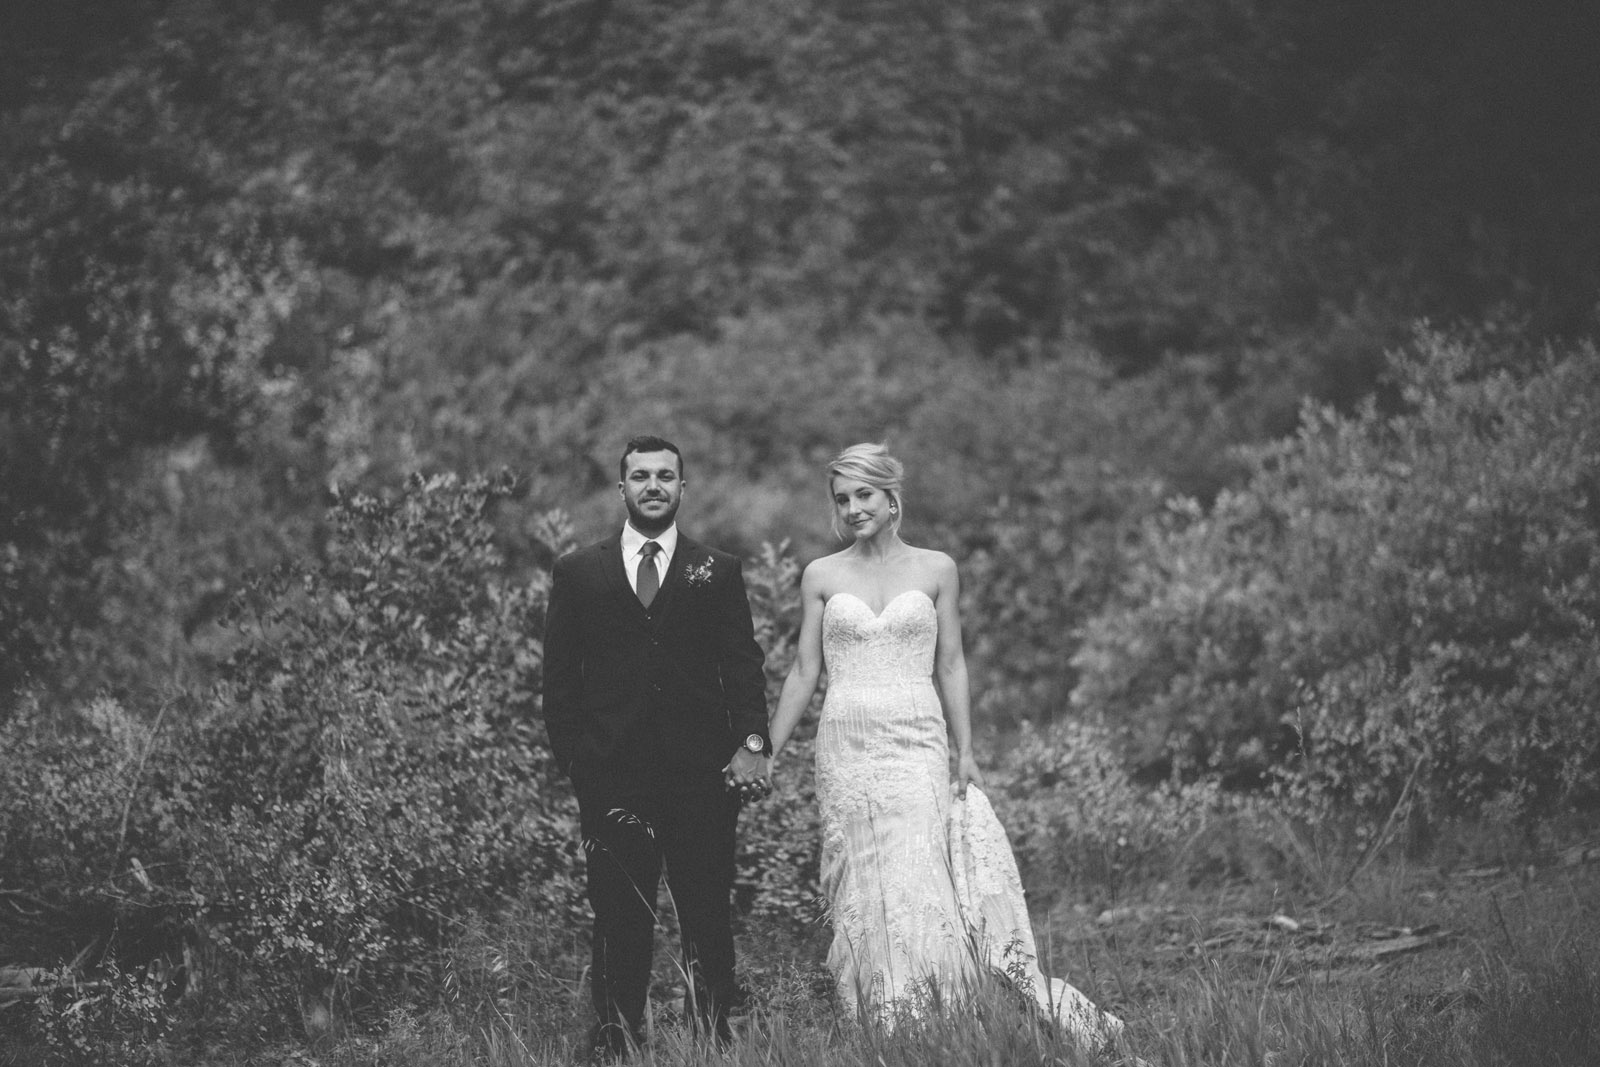 156-beautiful-bride-and-groom-photojournalist-portraits-at-elopement-wedding-in-durango-colorado-forest